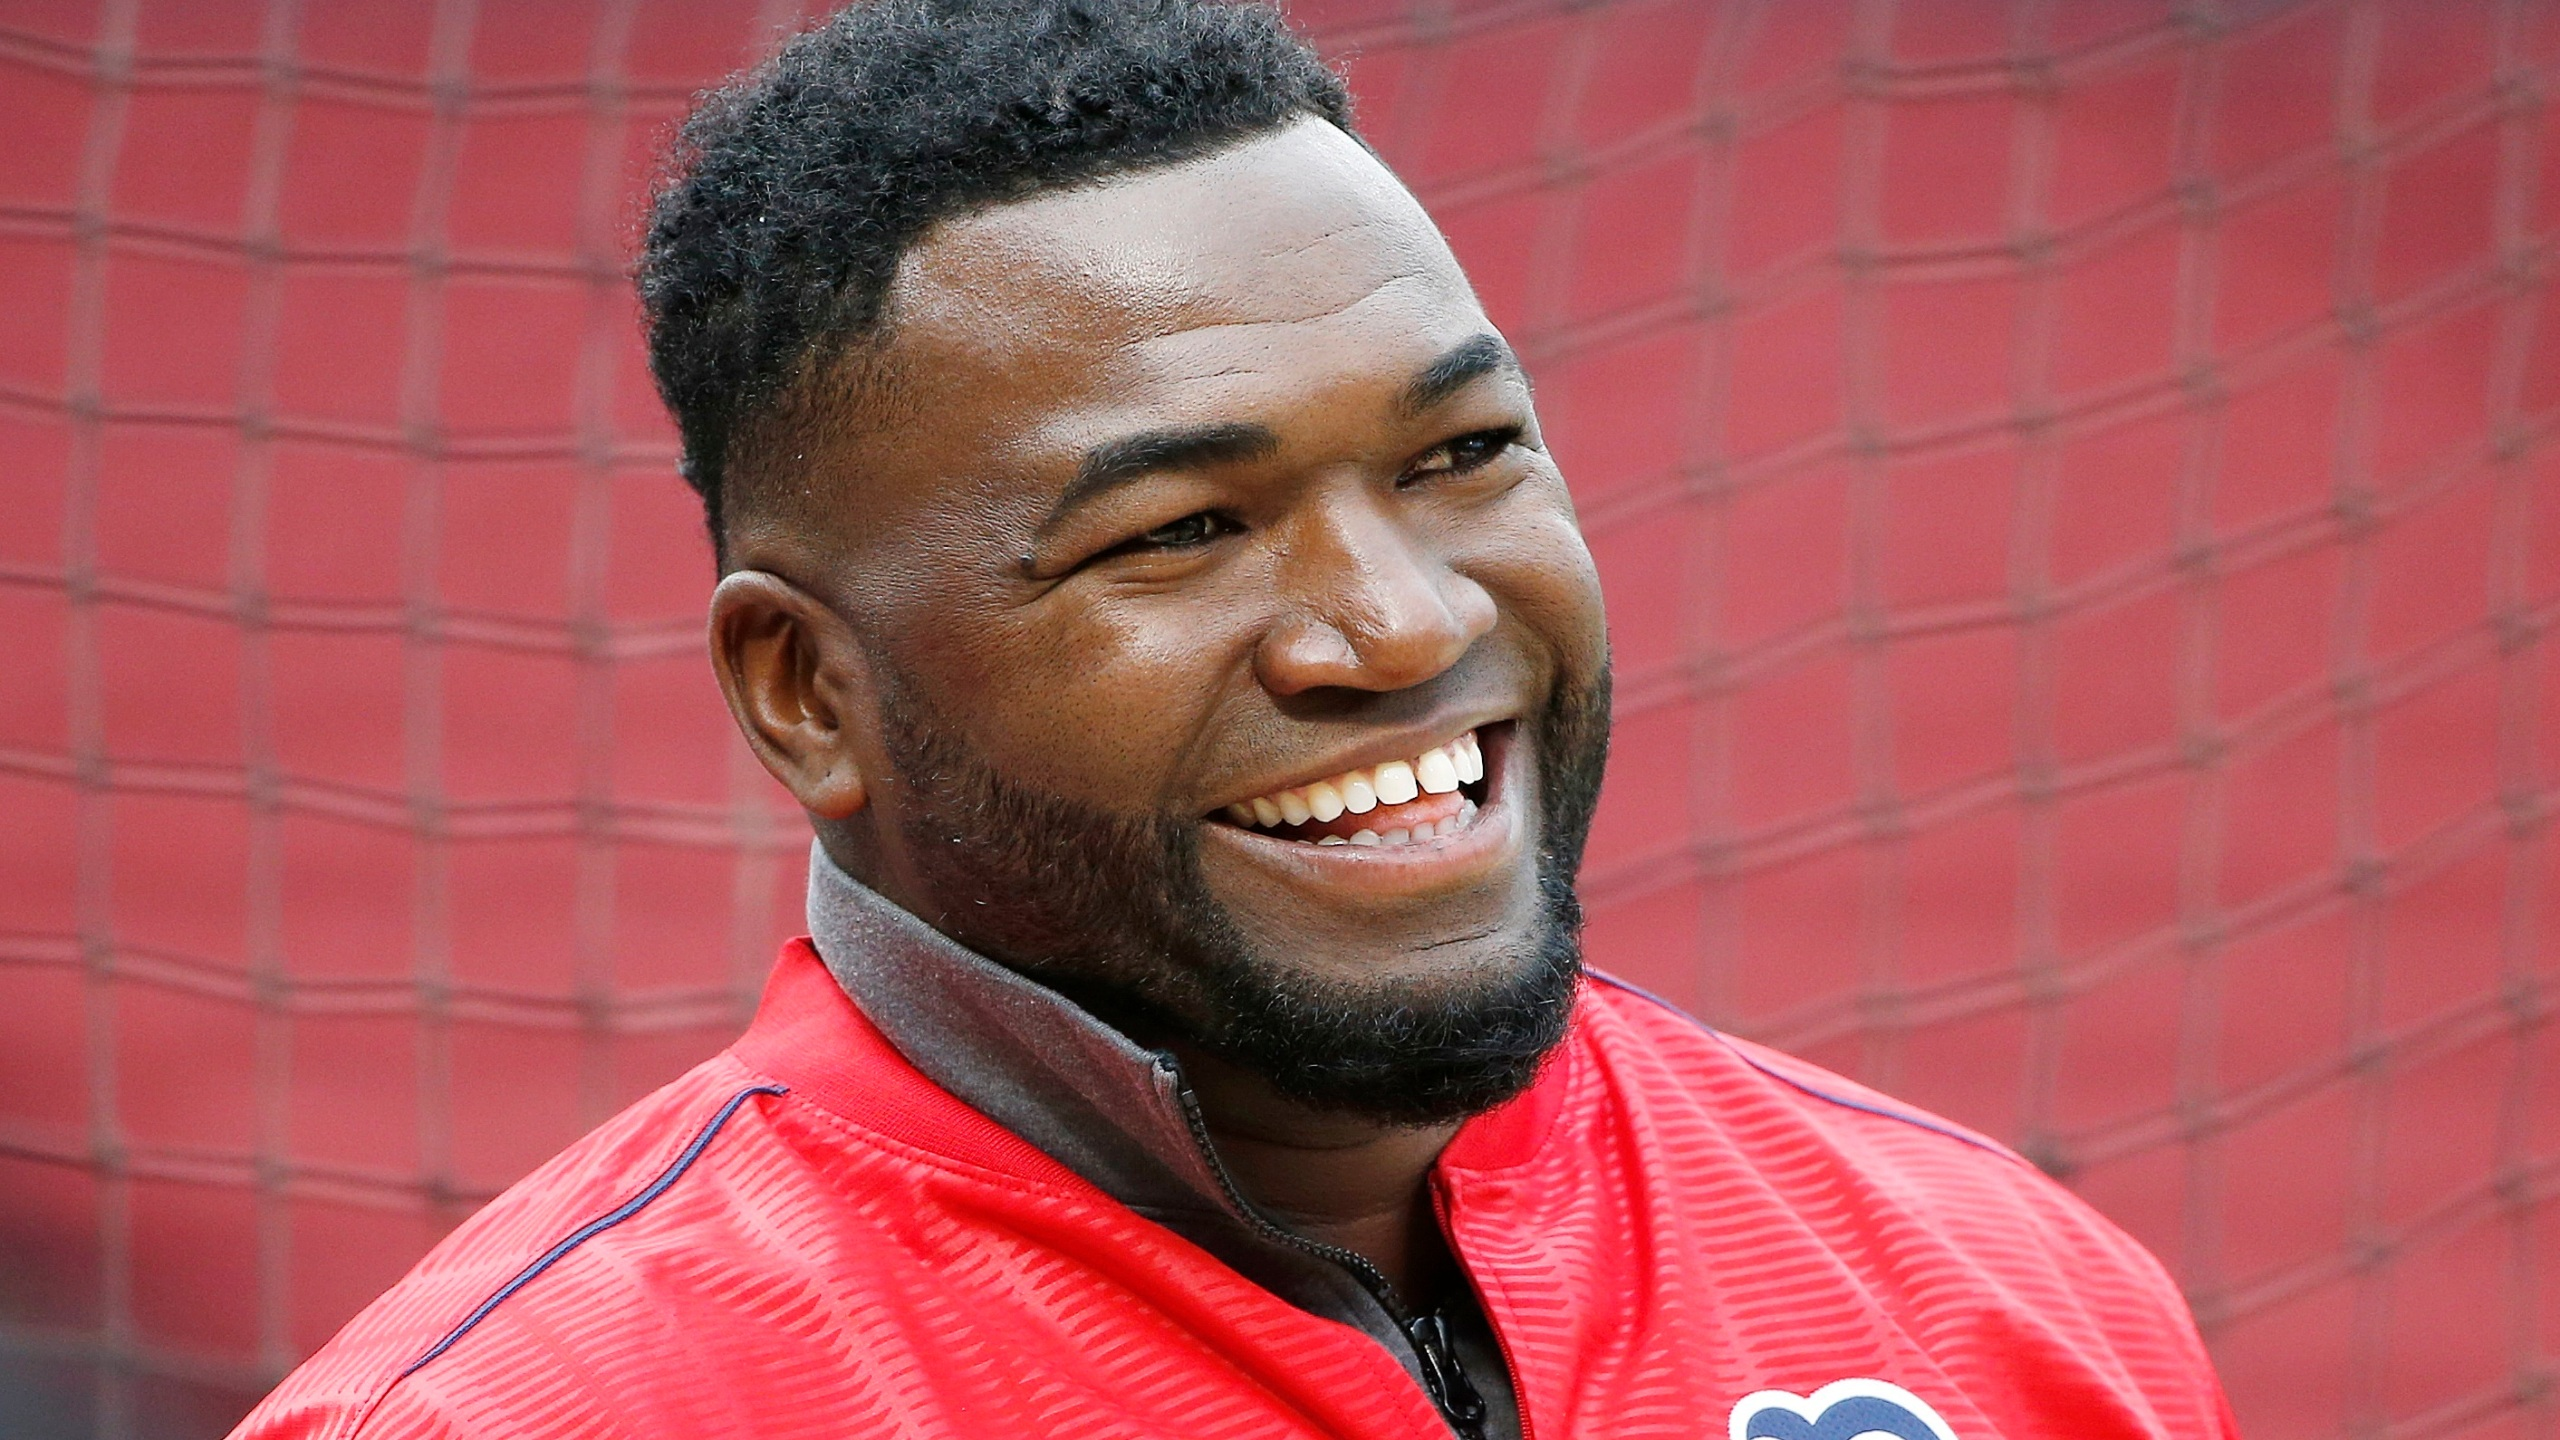 David_Ortiz_Shot_Baseball_26592-159532.jpg50670032